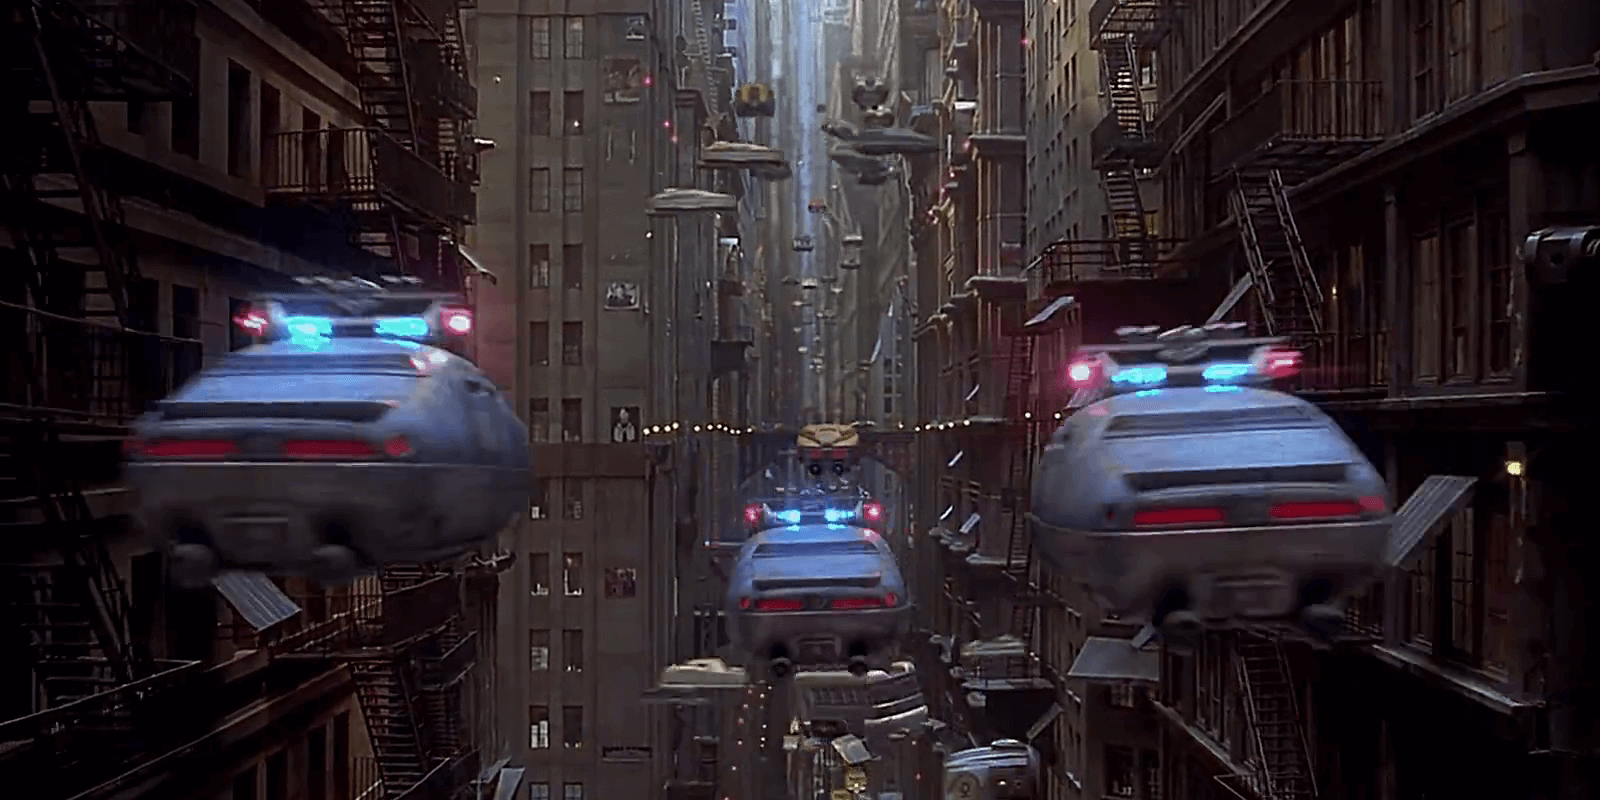 fifth element transport, future flying cars